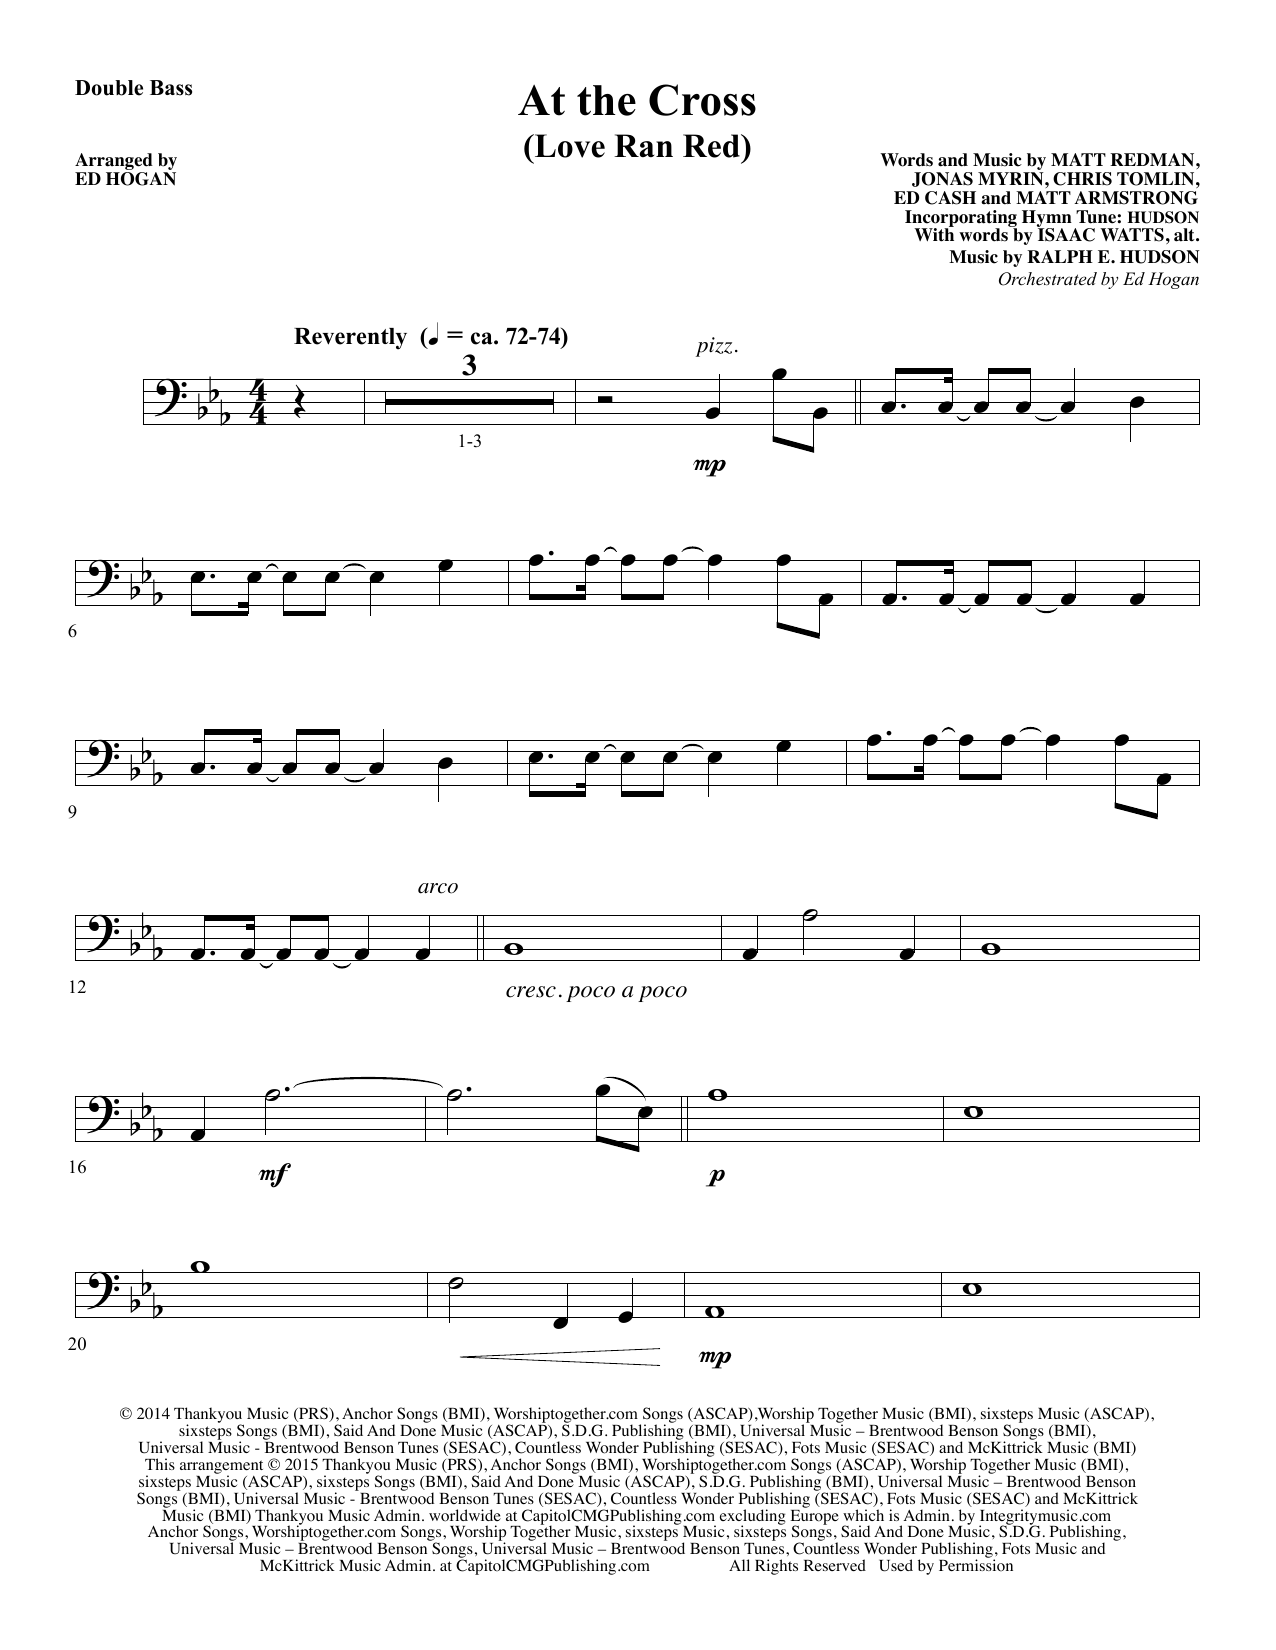 At the Cross - Double Bass Sheet Music